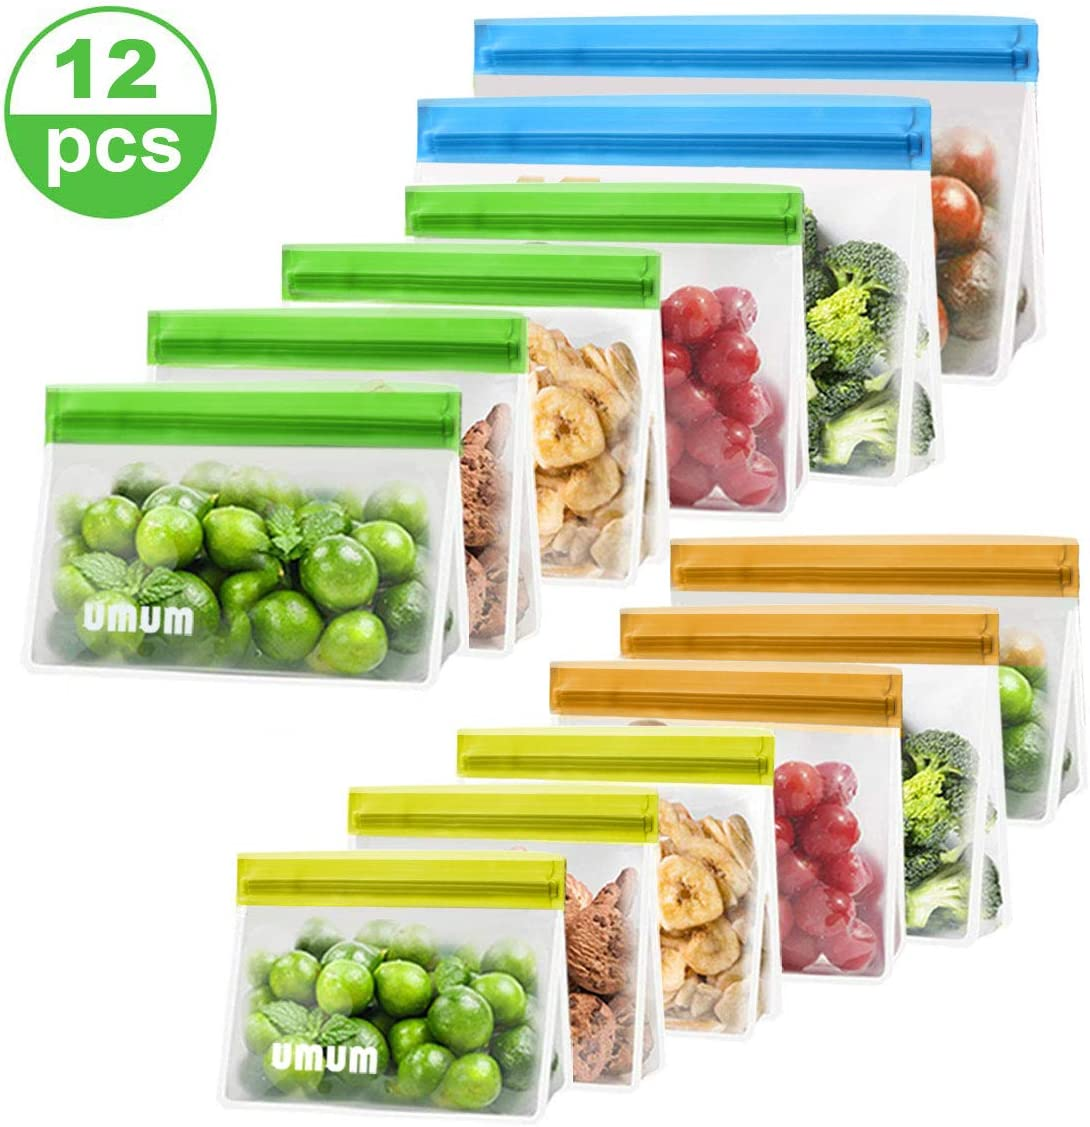 Reusable Food Storage Bags, 12 Pack PEVA Reusable Freezer Bags(2 Reusable Gallon Bags + 4 Reusable Lunch Bags + 3 Reusable Sandwich Bags + 3 Leakproof Reusable Snack Bags) Ziplock Lunch Bags BPA FREE